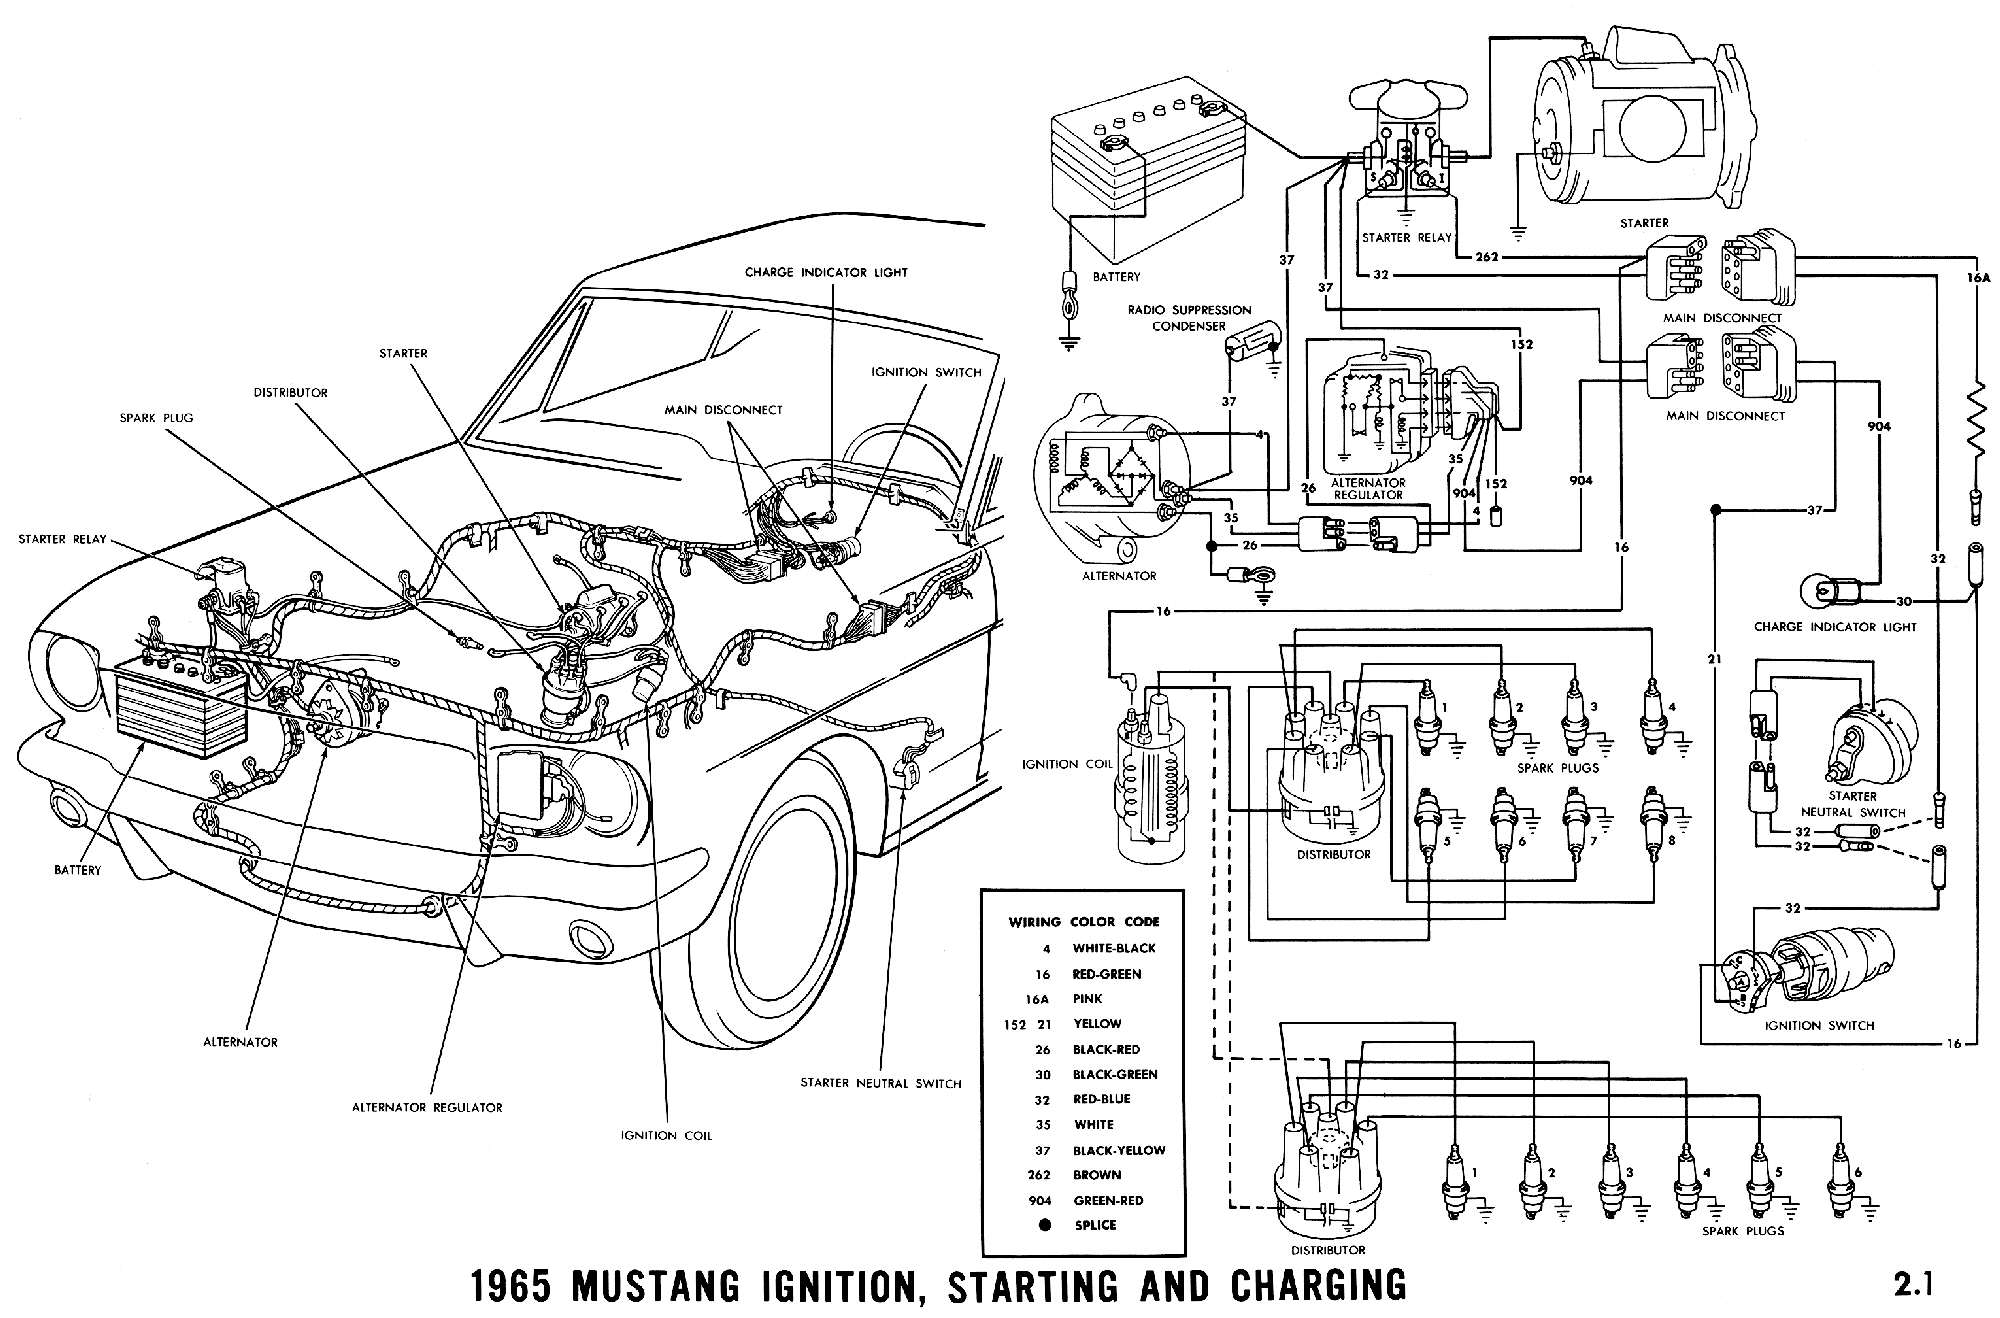 1965c 1965 mustang wiring diagrams average joe restoration basic engine wiring diagram at alyssarenee.co